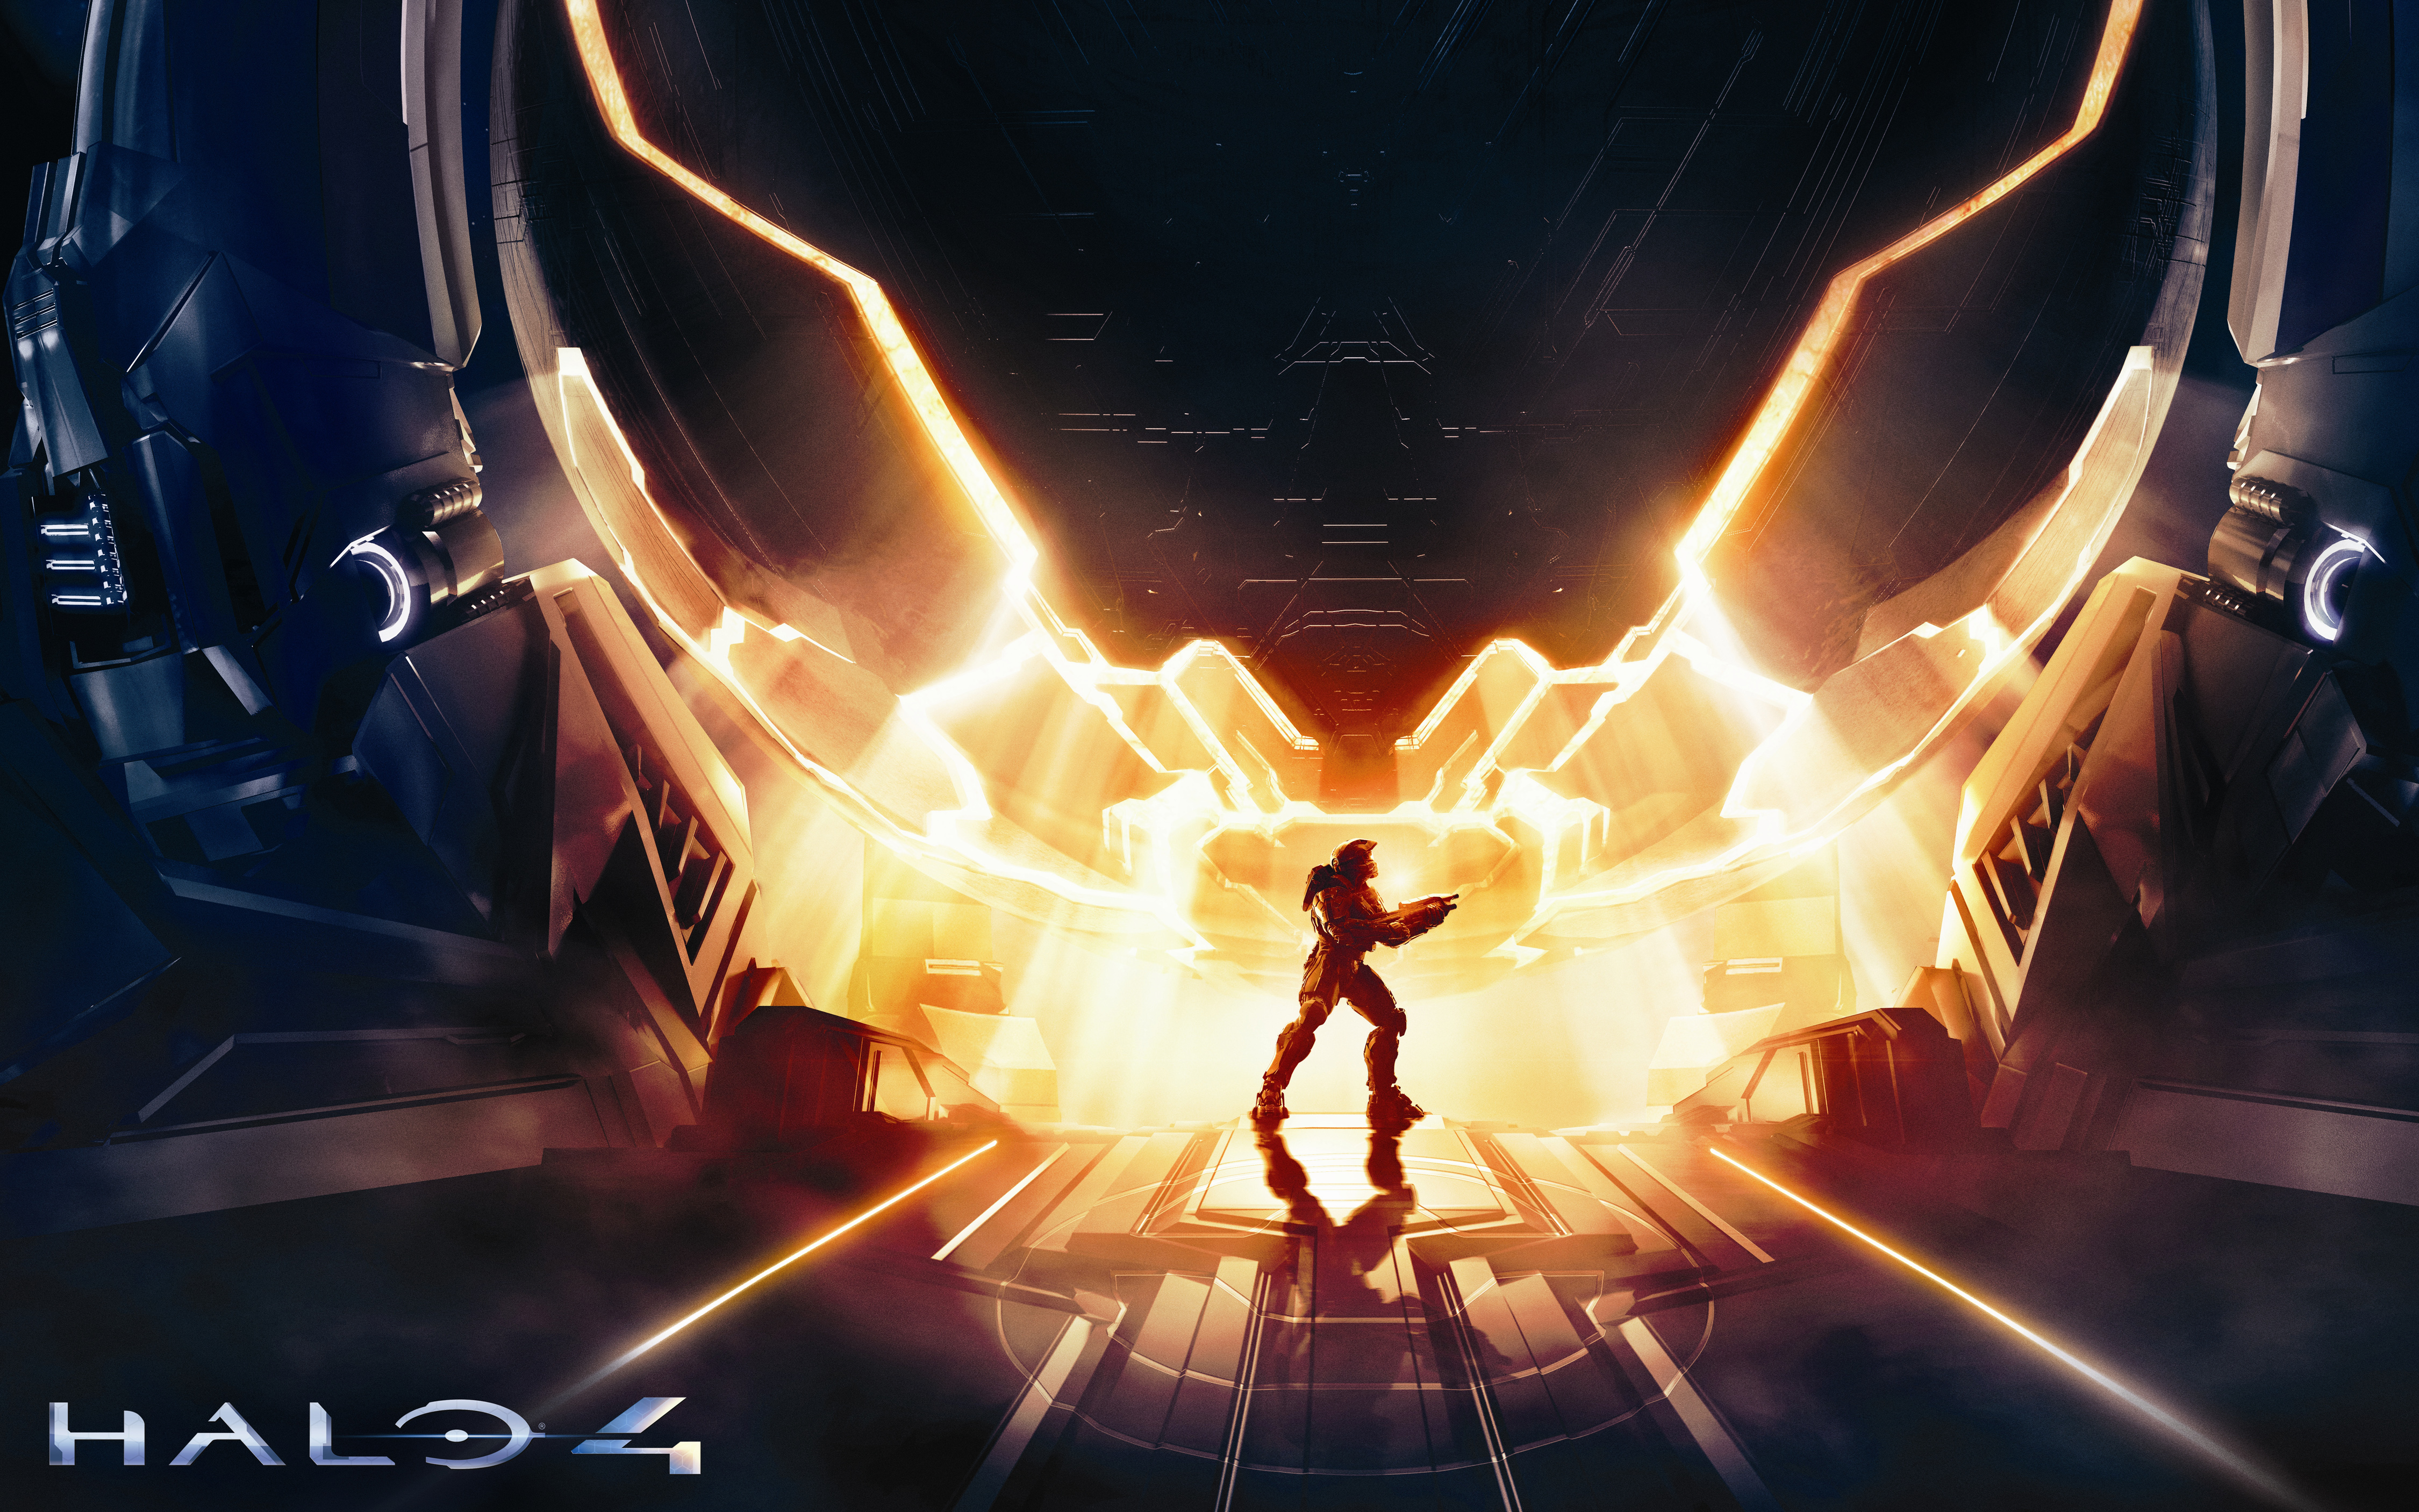 Halo 4 Xbox 360 Game Wallpapers HD Wallpapers 4500x2813